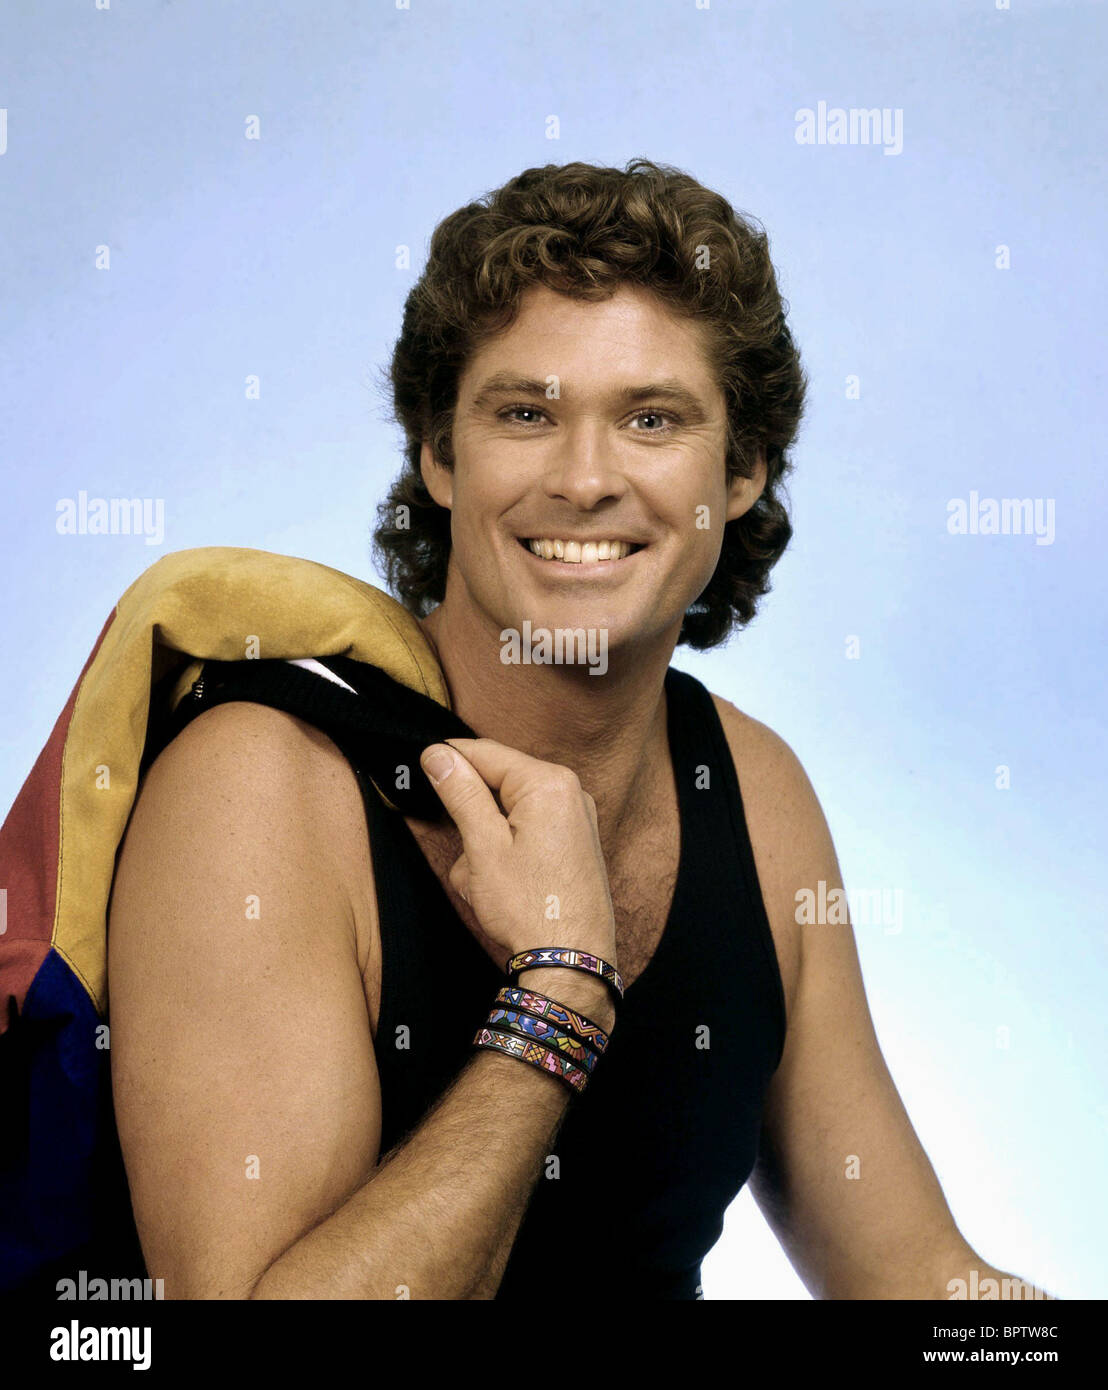 L'acteur et chanteur David Hasselhoff (1989) Photo Stock